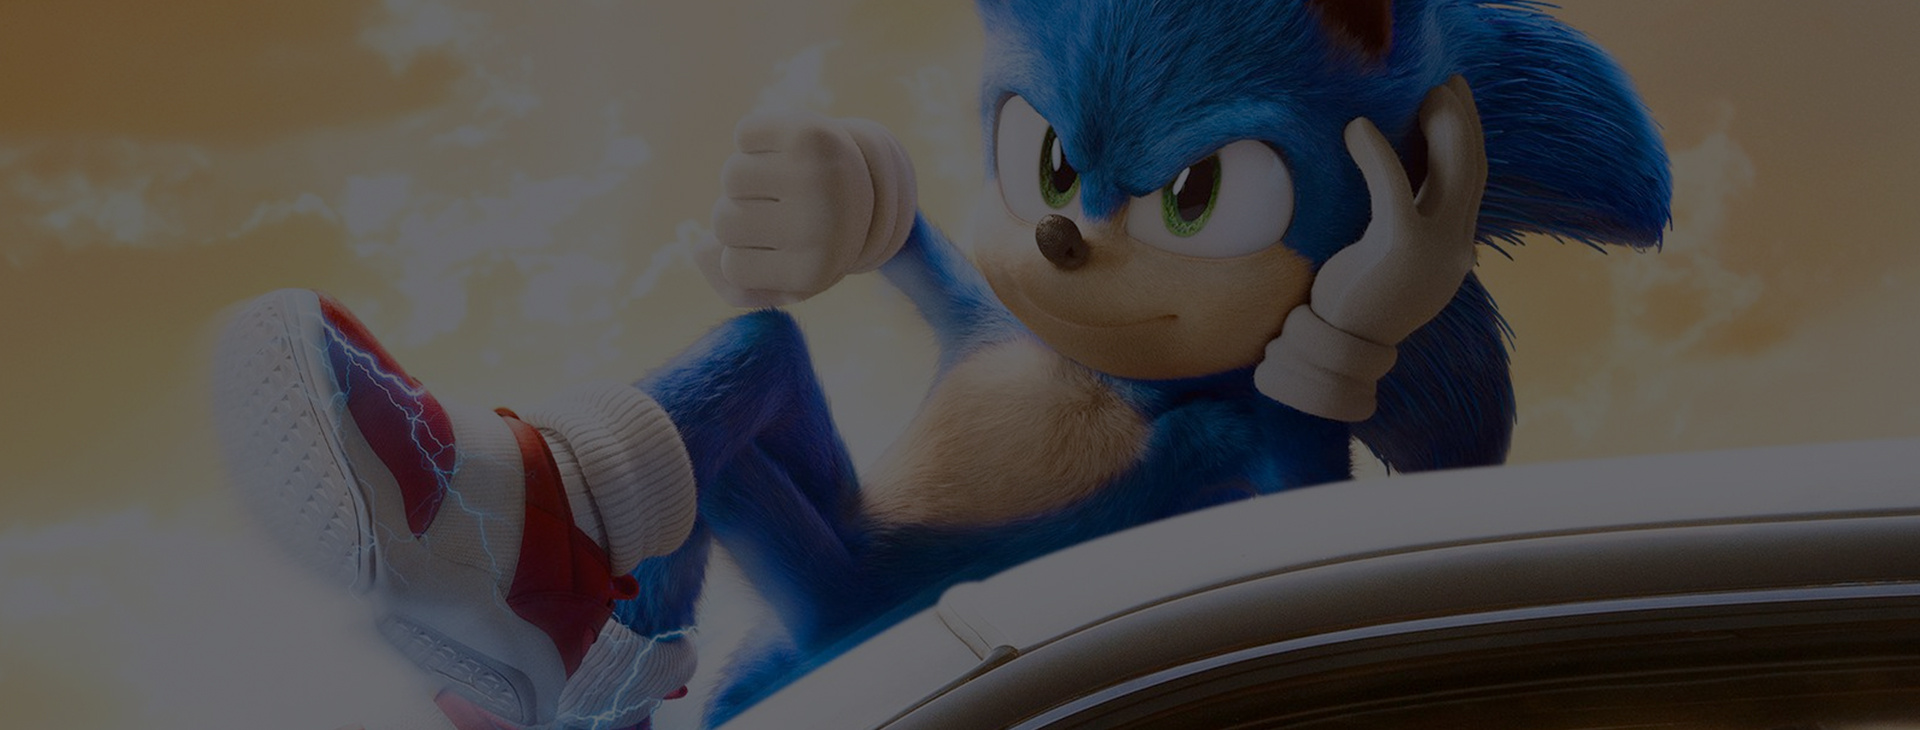 Sonic The Movie - 360° Social Media, Brand Content